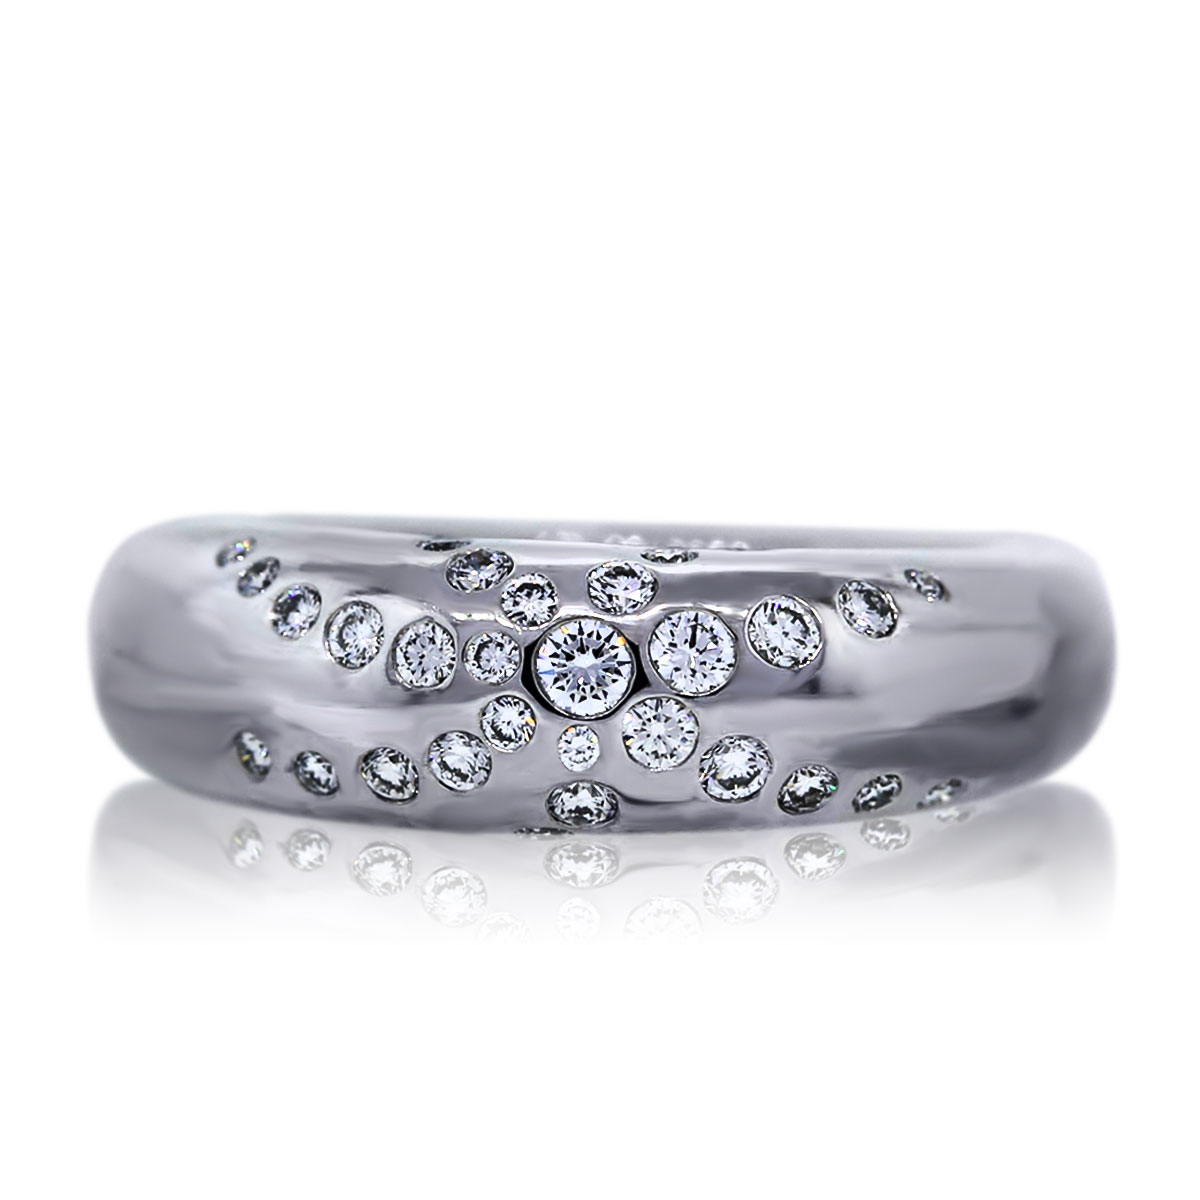 18k White Gold Diamond Chaumet Cocktail Ring